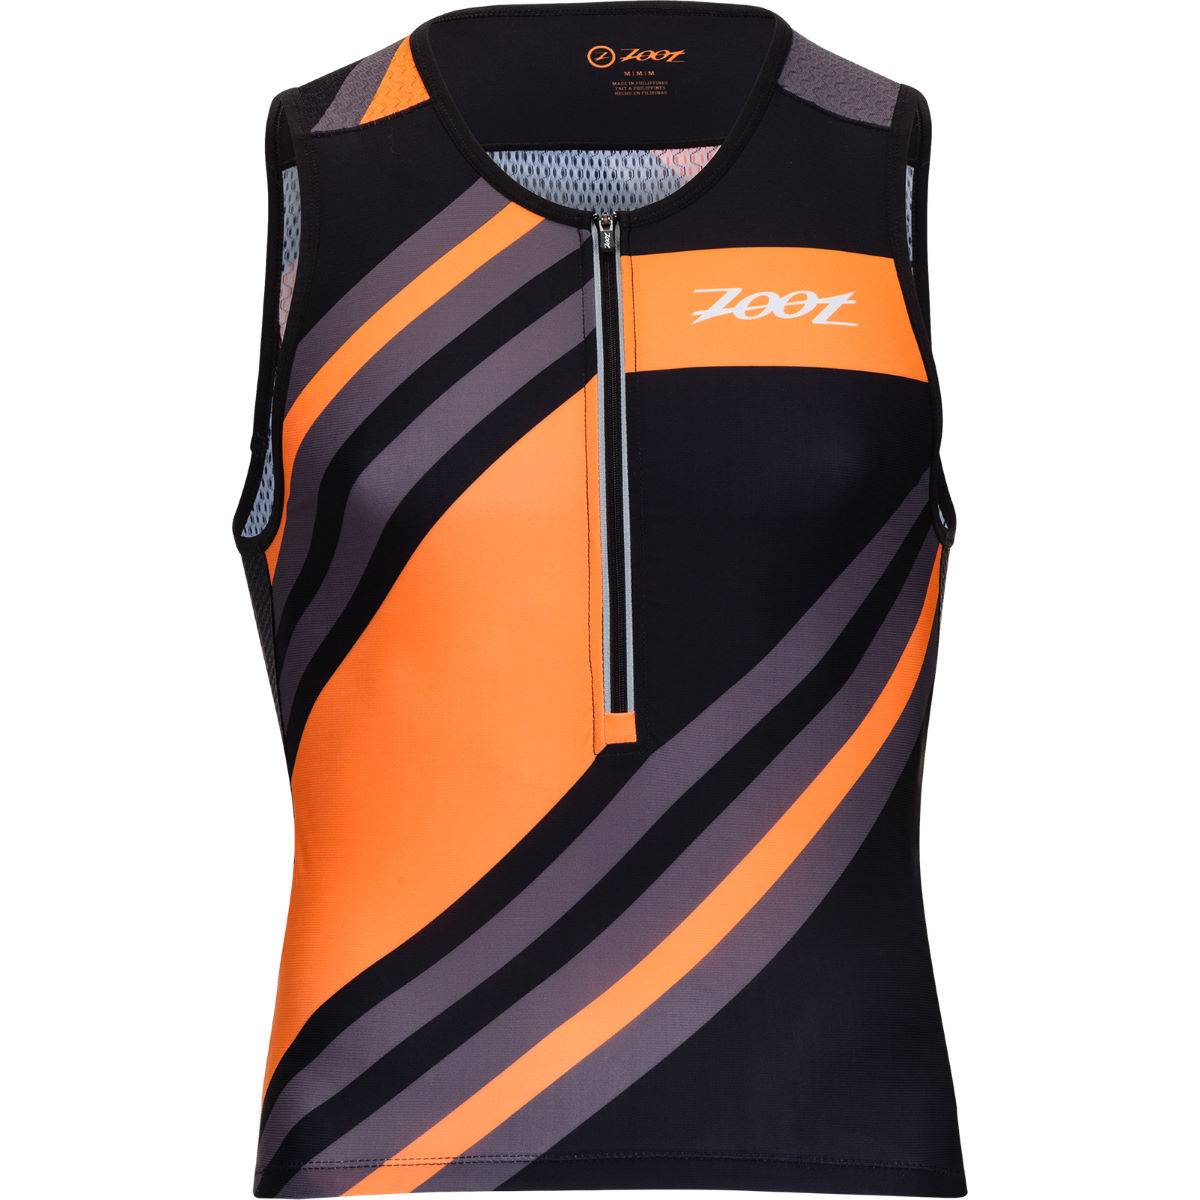 Zoot Ultra Tri Tank Tri Tops Review